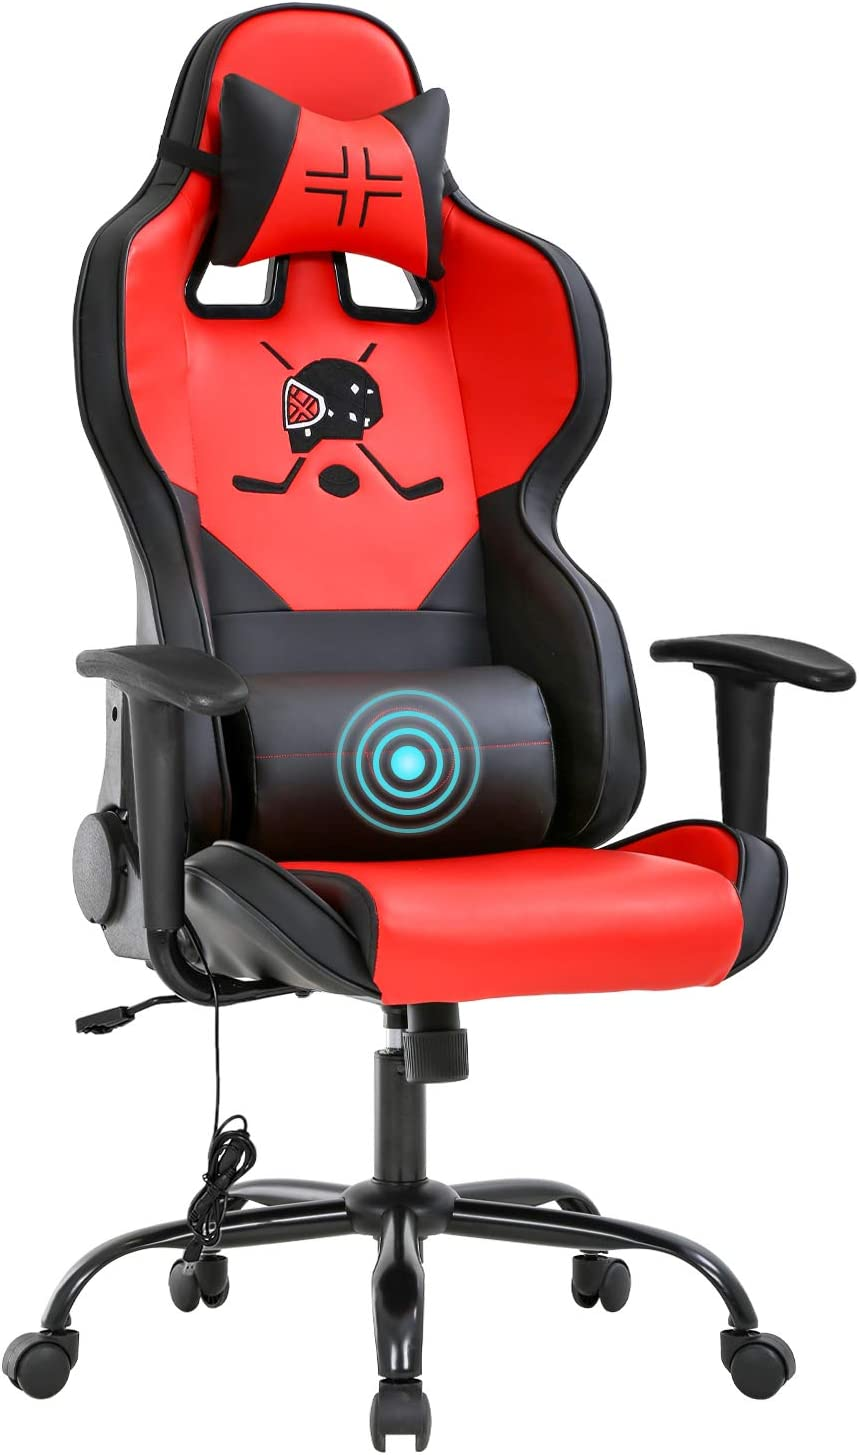 Gaming Chair Massage Office Chair Ergonomic Desk Chair with Lumbar Support Headrest Armrest Task Rolling Swivel PC E-Sports Racing Chair PU Leather Adjustable Computer Chair for Men(Red)